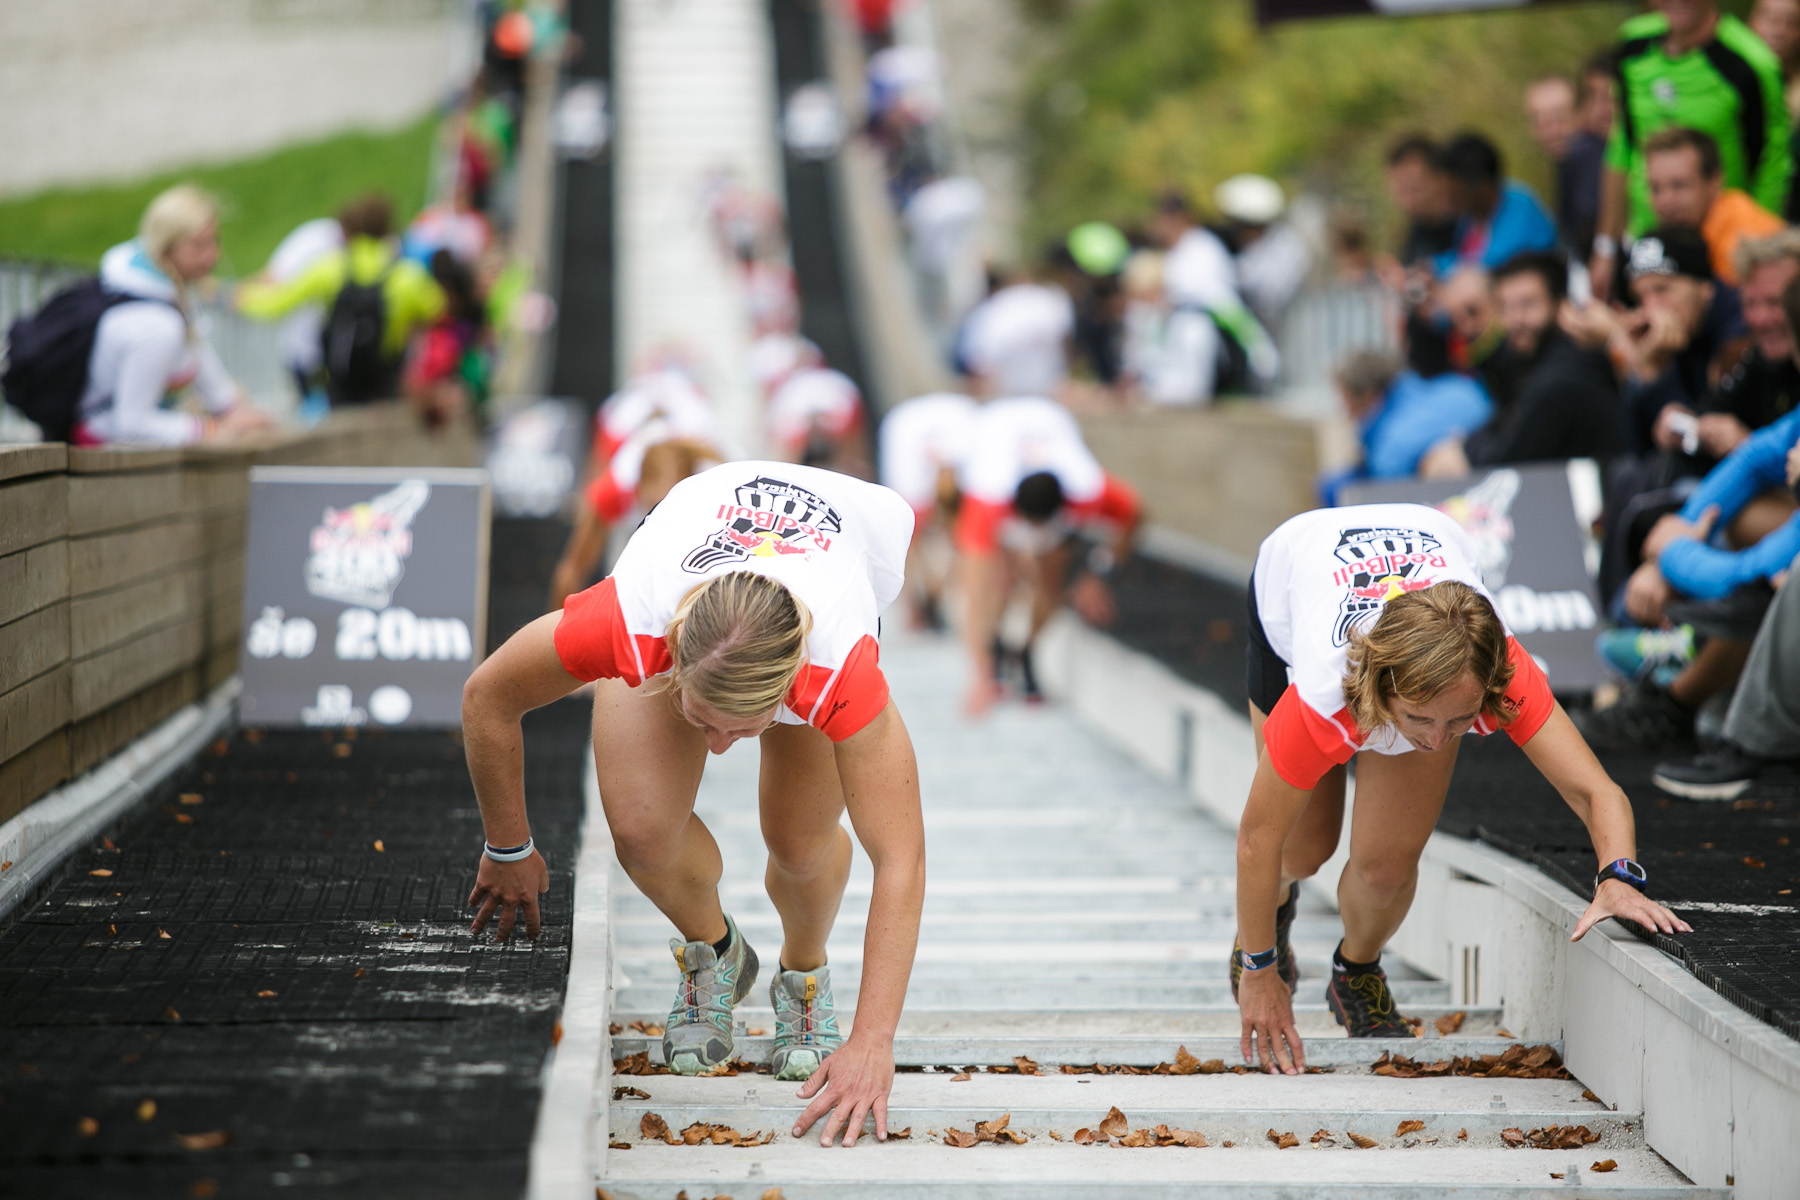 Karmen Klancnik (L) and Petra Miklosa (R) run up the ski flying hill during the Red Bull 400 race in Planica, Slovenia, Sep. 19, 2015.